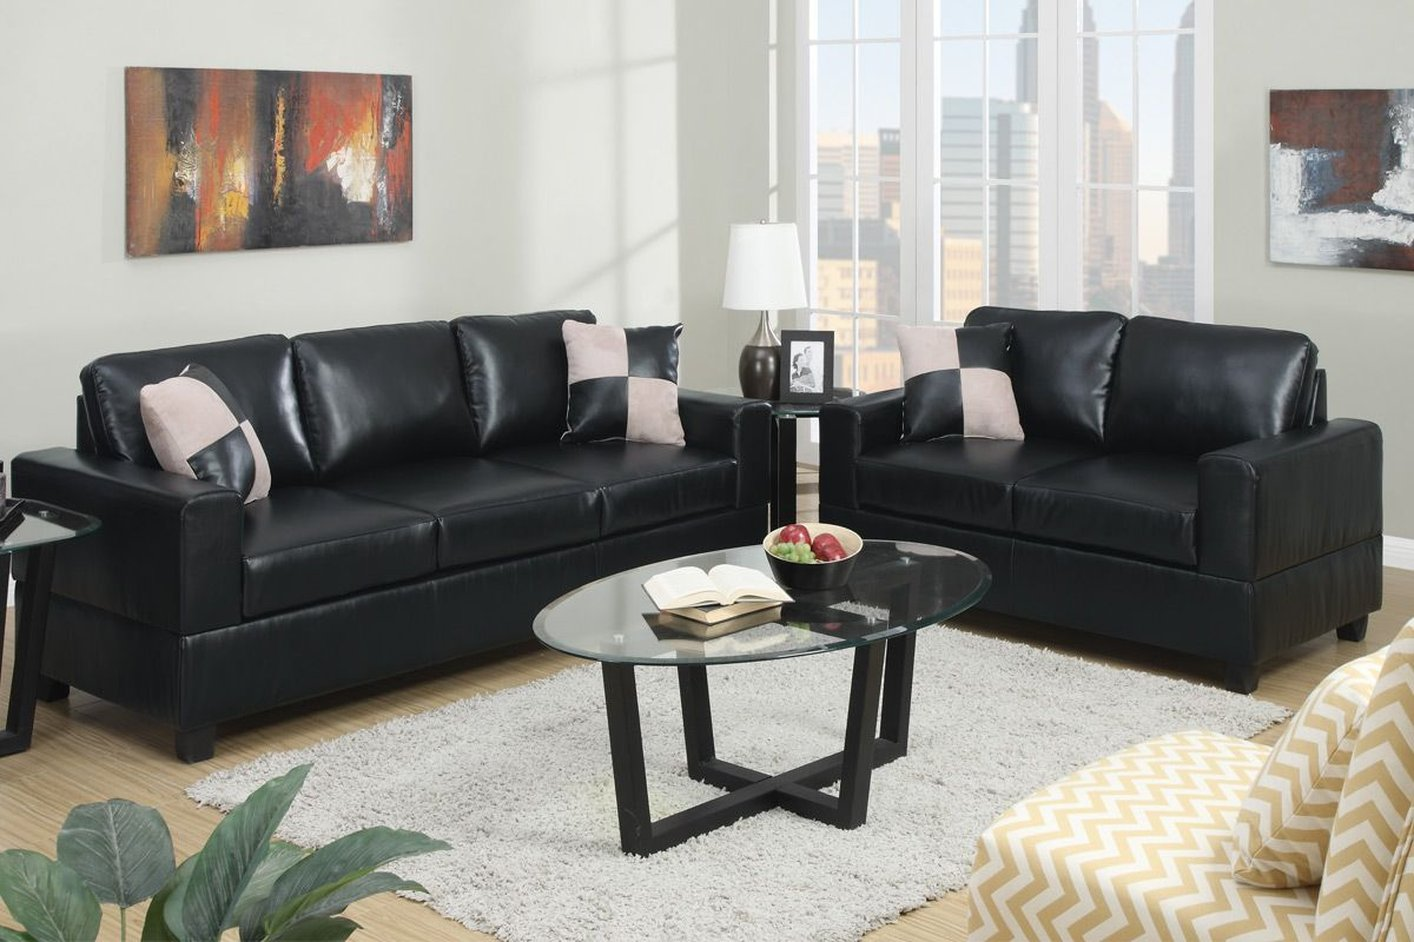 Poundex Tesse f7598 Black Leather Sofa and Loveseat Set  : tessa black faux leather sofa and loveseat set 15 from www.stealasofa.com size 1414 x 942 jpeg 188kB